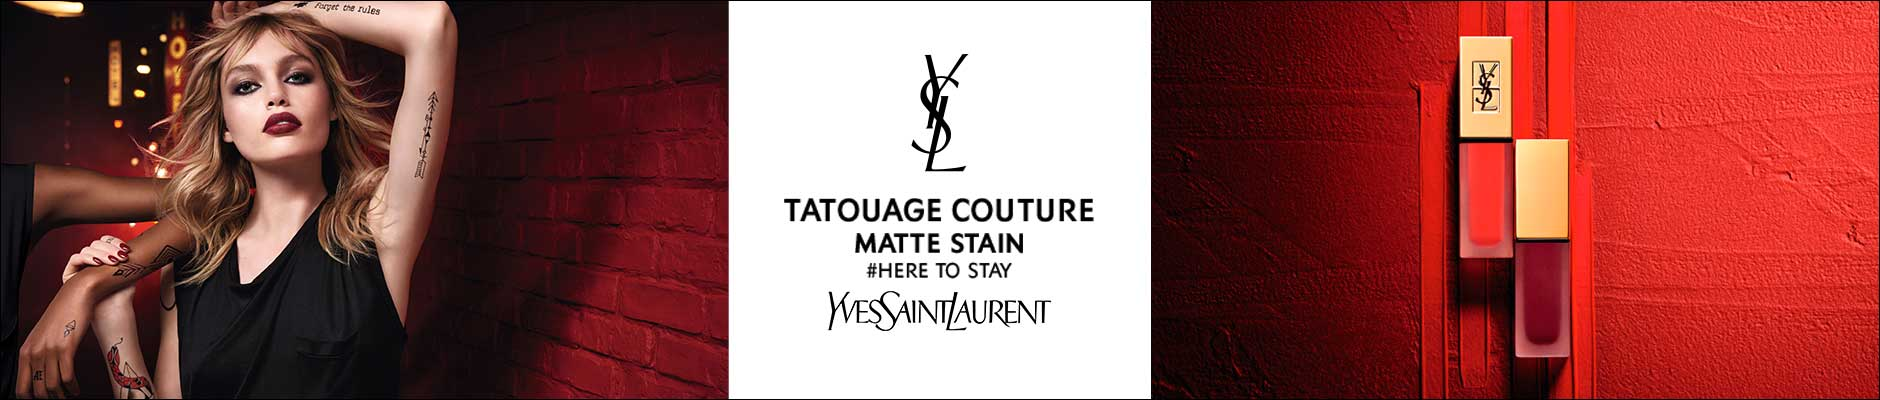 Tatouage couture matte stain, #here to stay, Yves Saint Laurent